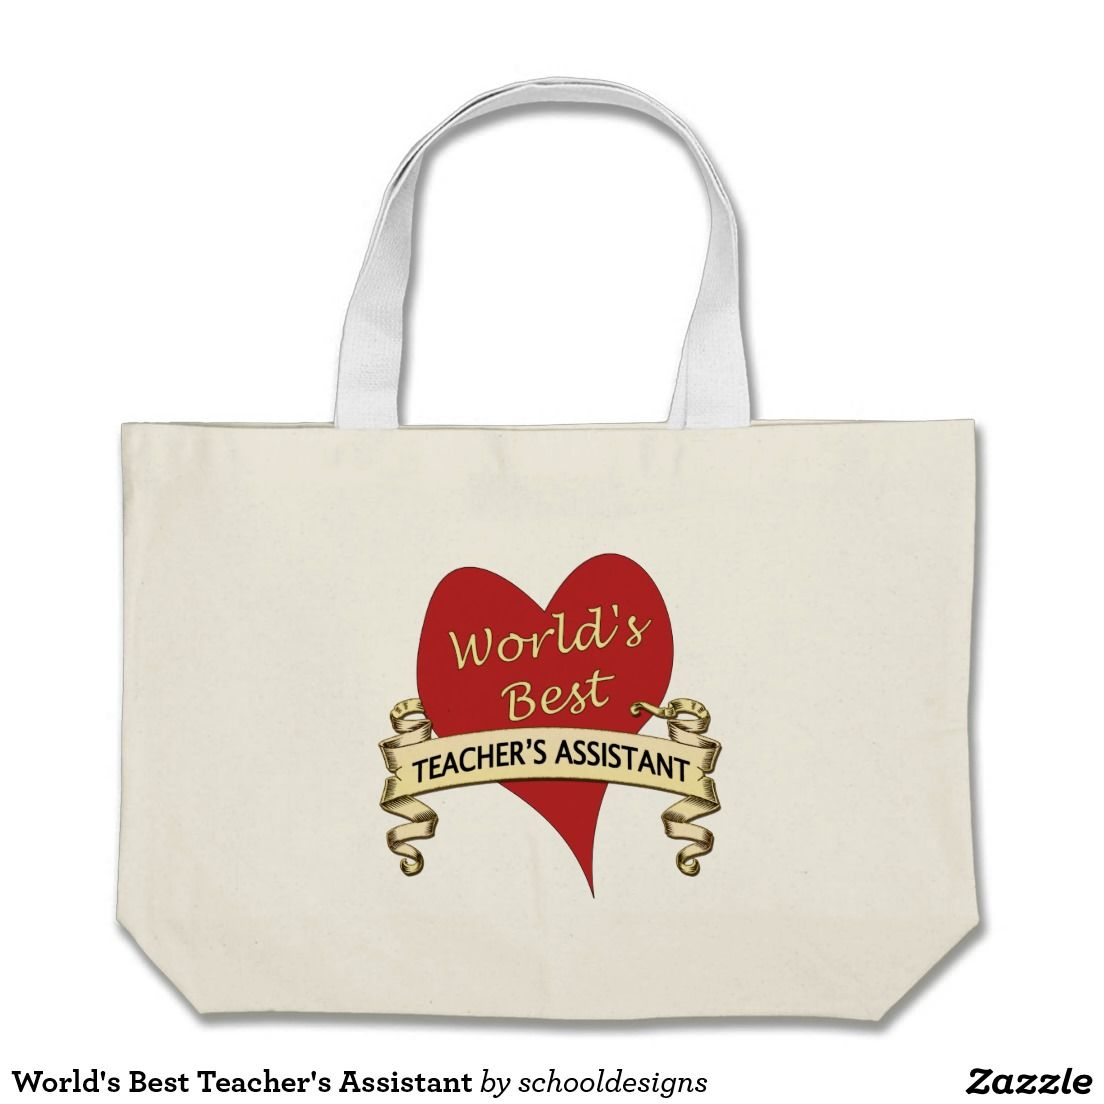 c84a55ef82a4 World's Best Teacher's Assistant Large Tote Bag | Zazzle.com ...